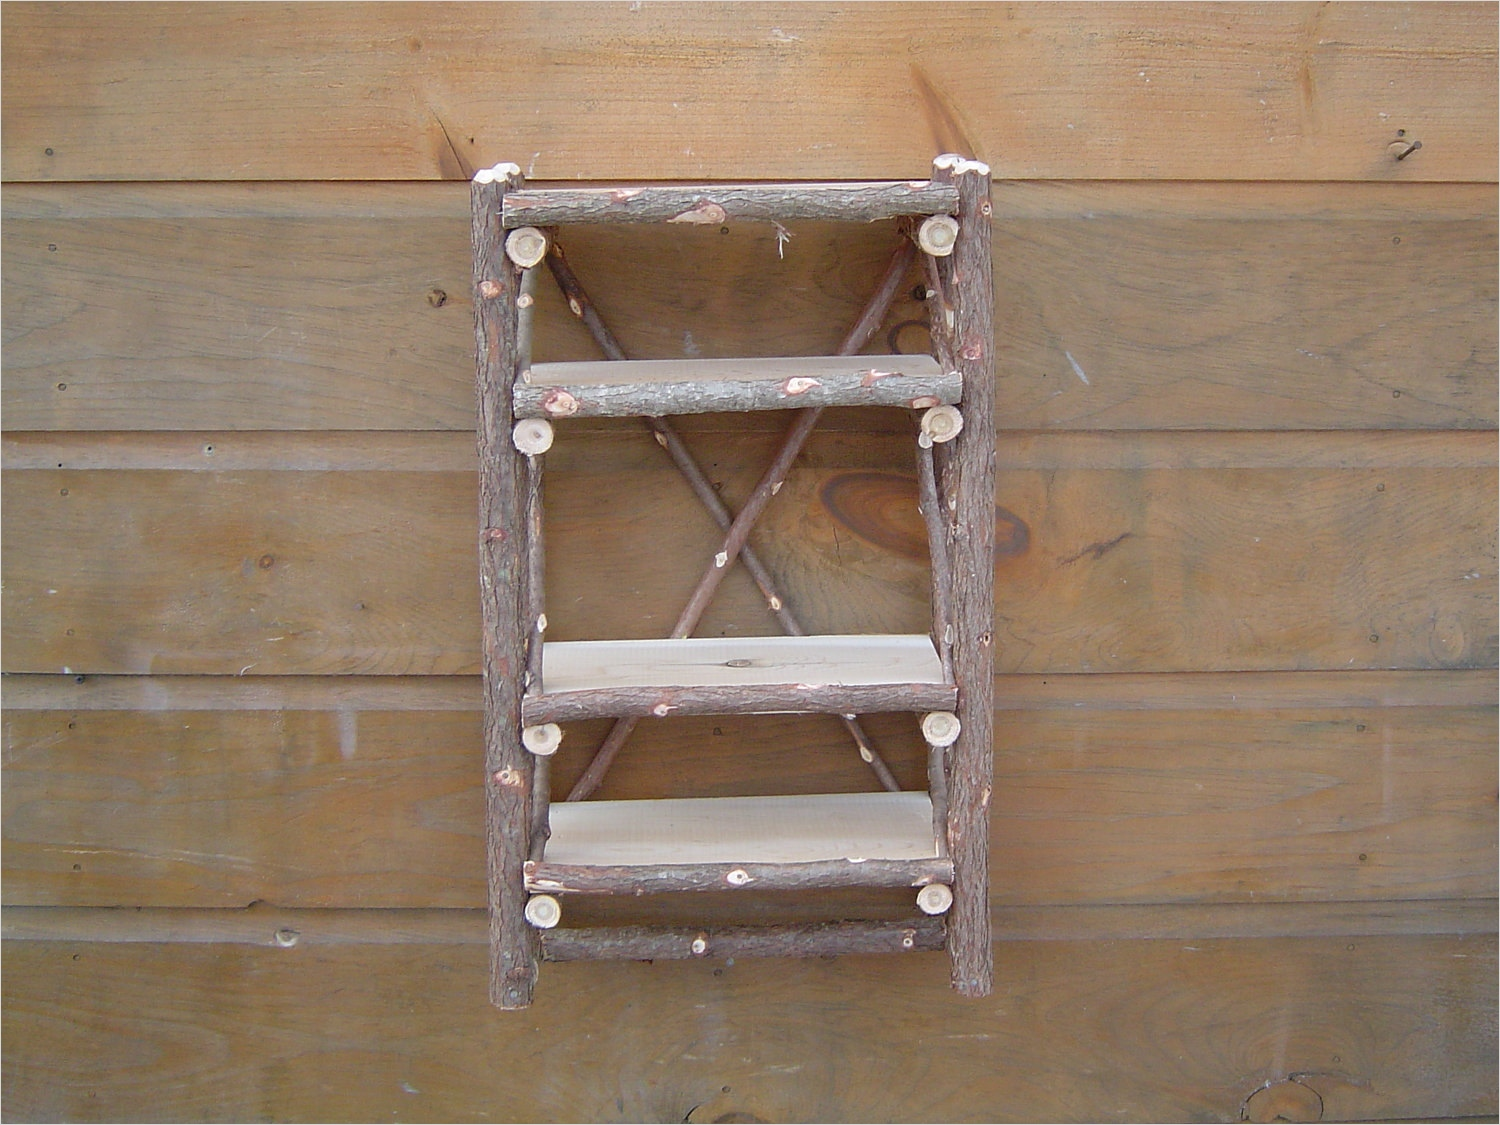 44 Creative Ideas Rustic Bathroom Walls Shelf 66 Maine Rustic Camp Bathroom Wall Shelf organizer by Logcabindecor 8